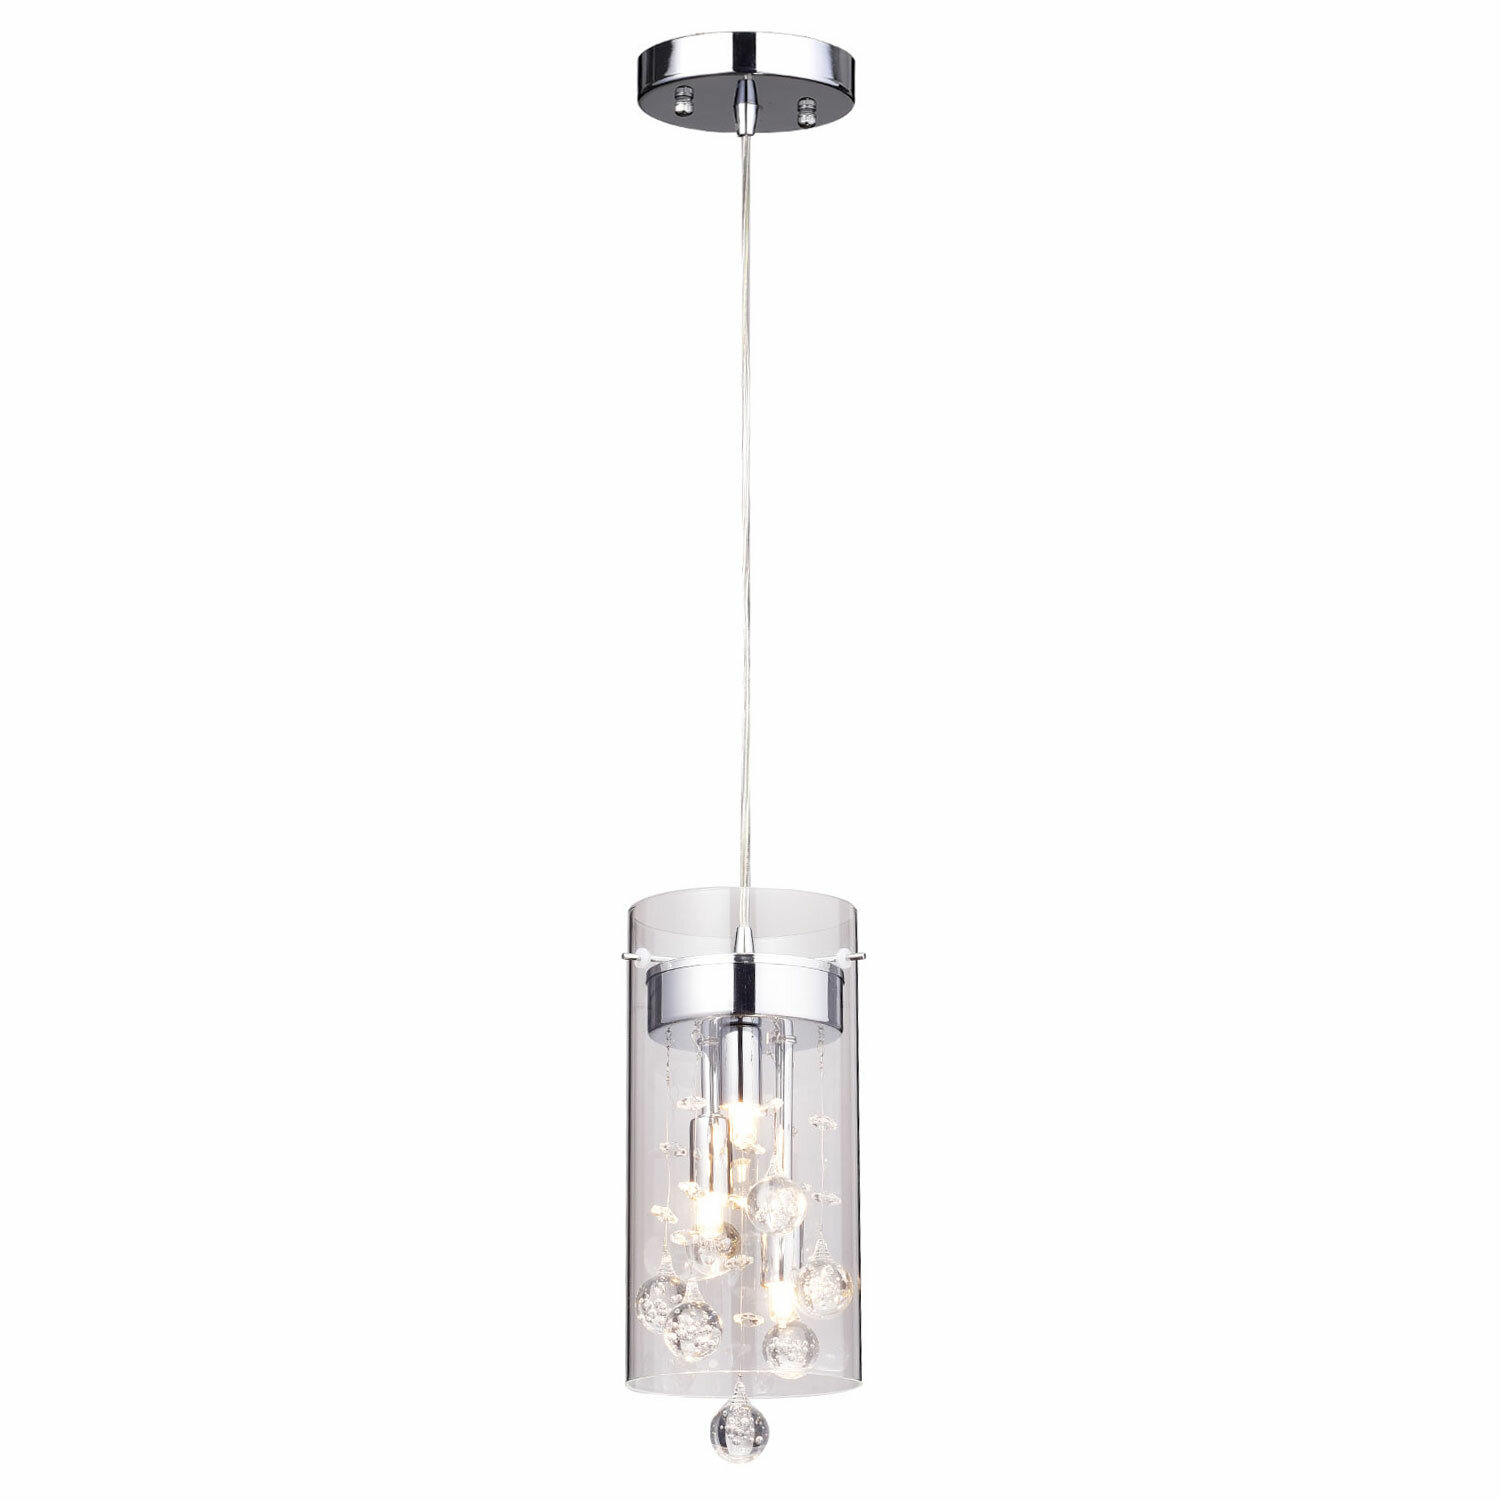 crystal light pendant clear inch item by matrix spectra and shown with mini cfm wide black geometrix swarovski cylinder schonbek